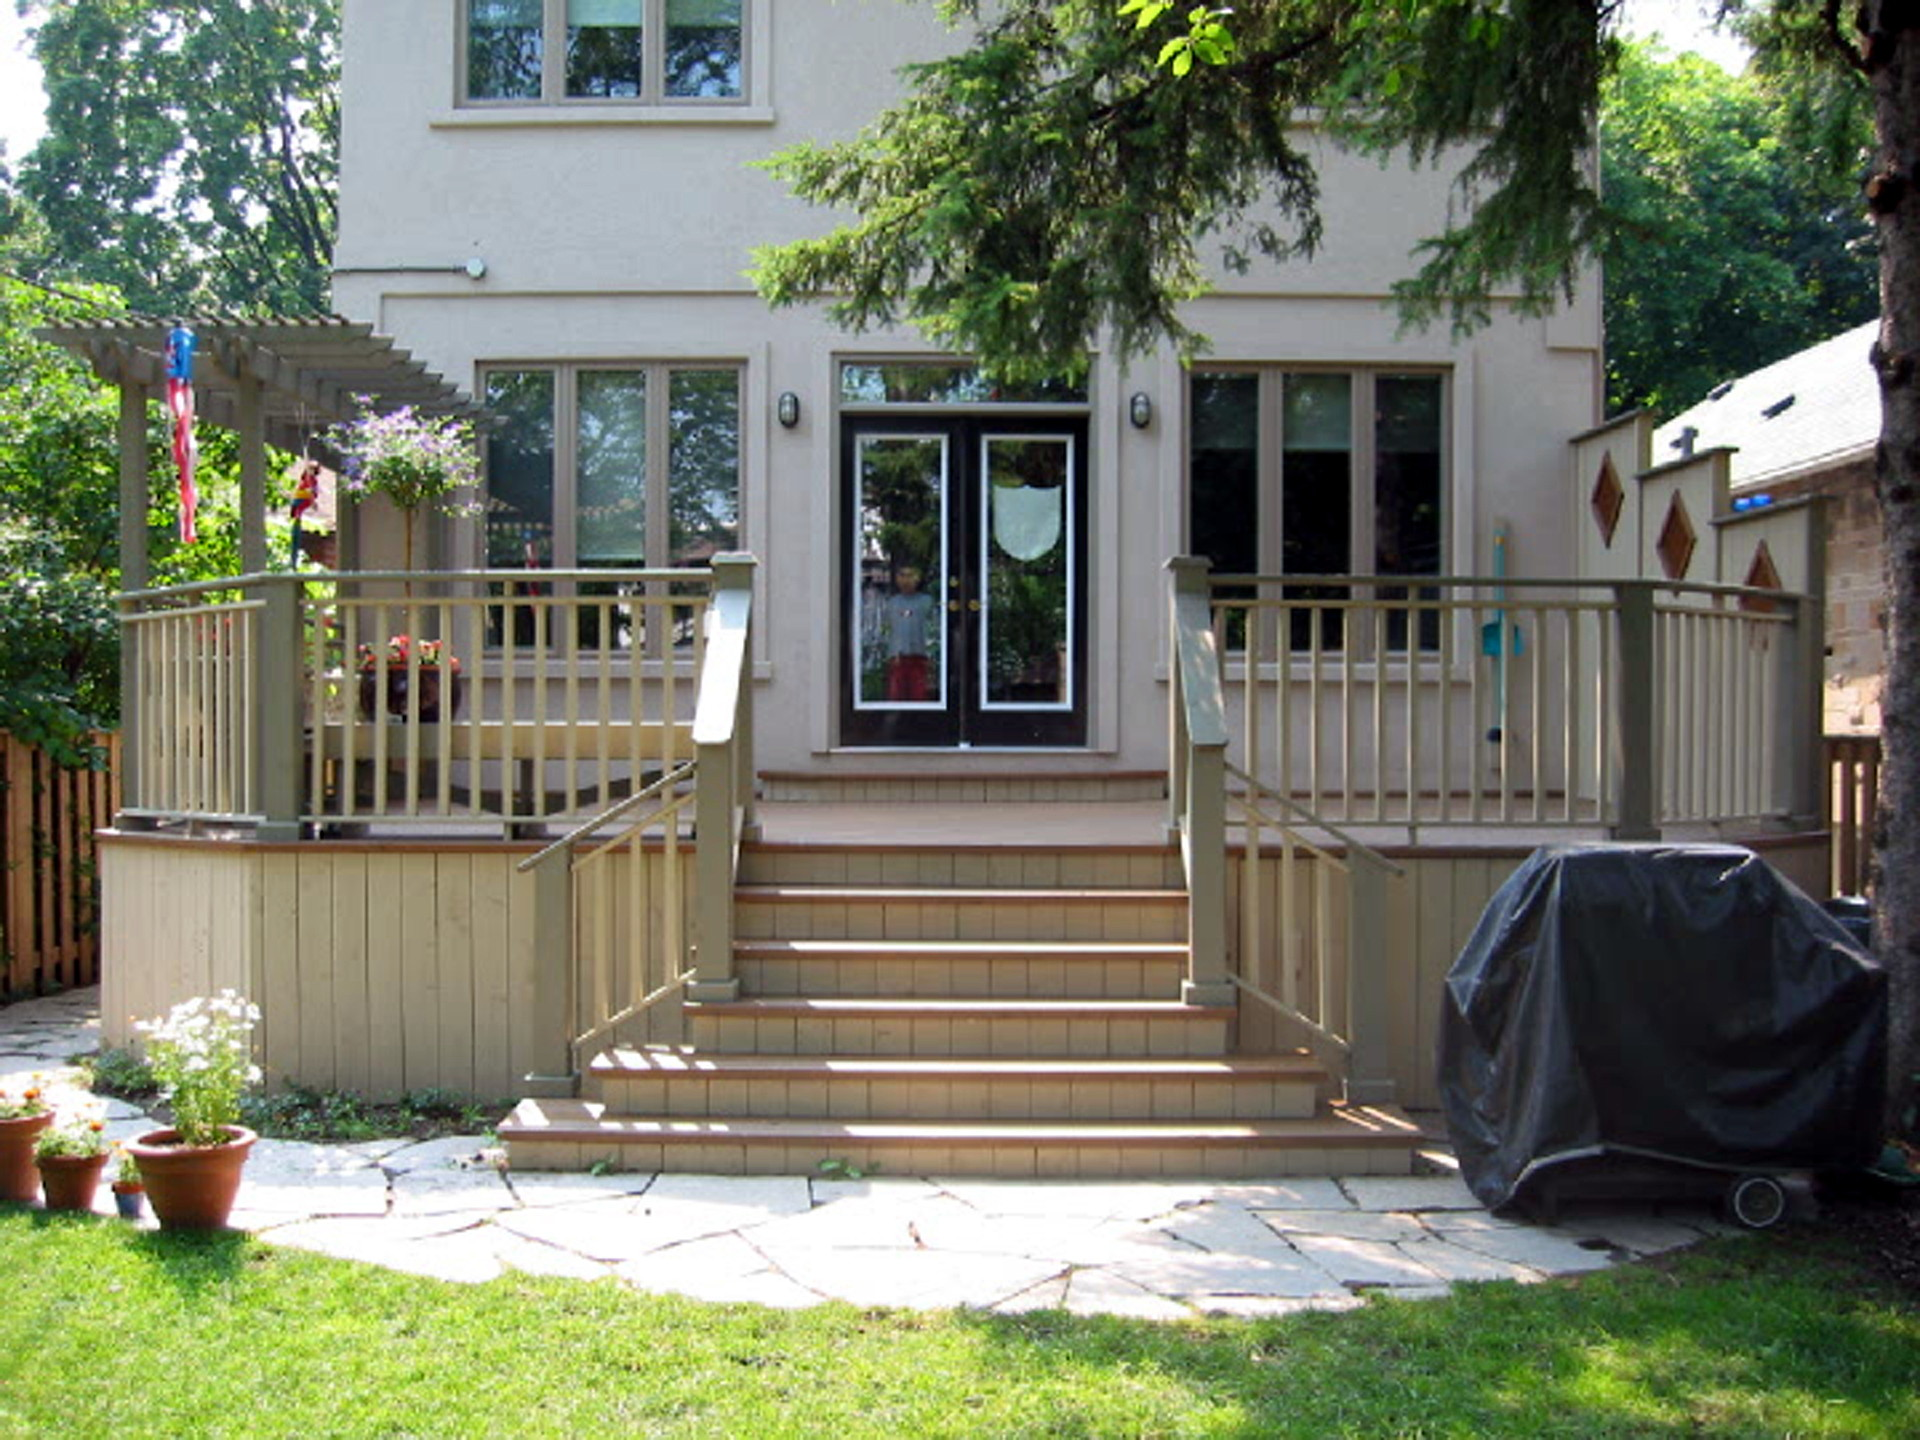 28 Decking Decking Renovations By Design Wood Patios And Decking Home Remodeling Gallery